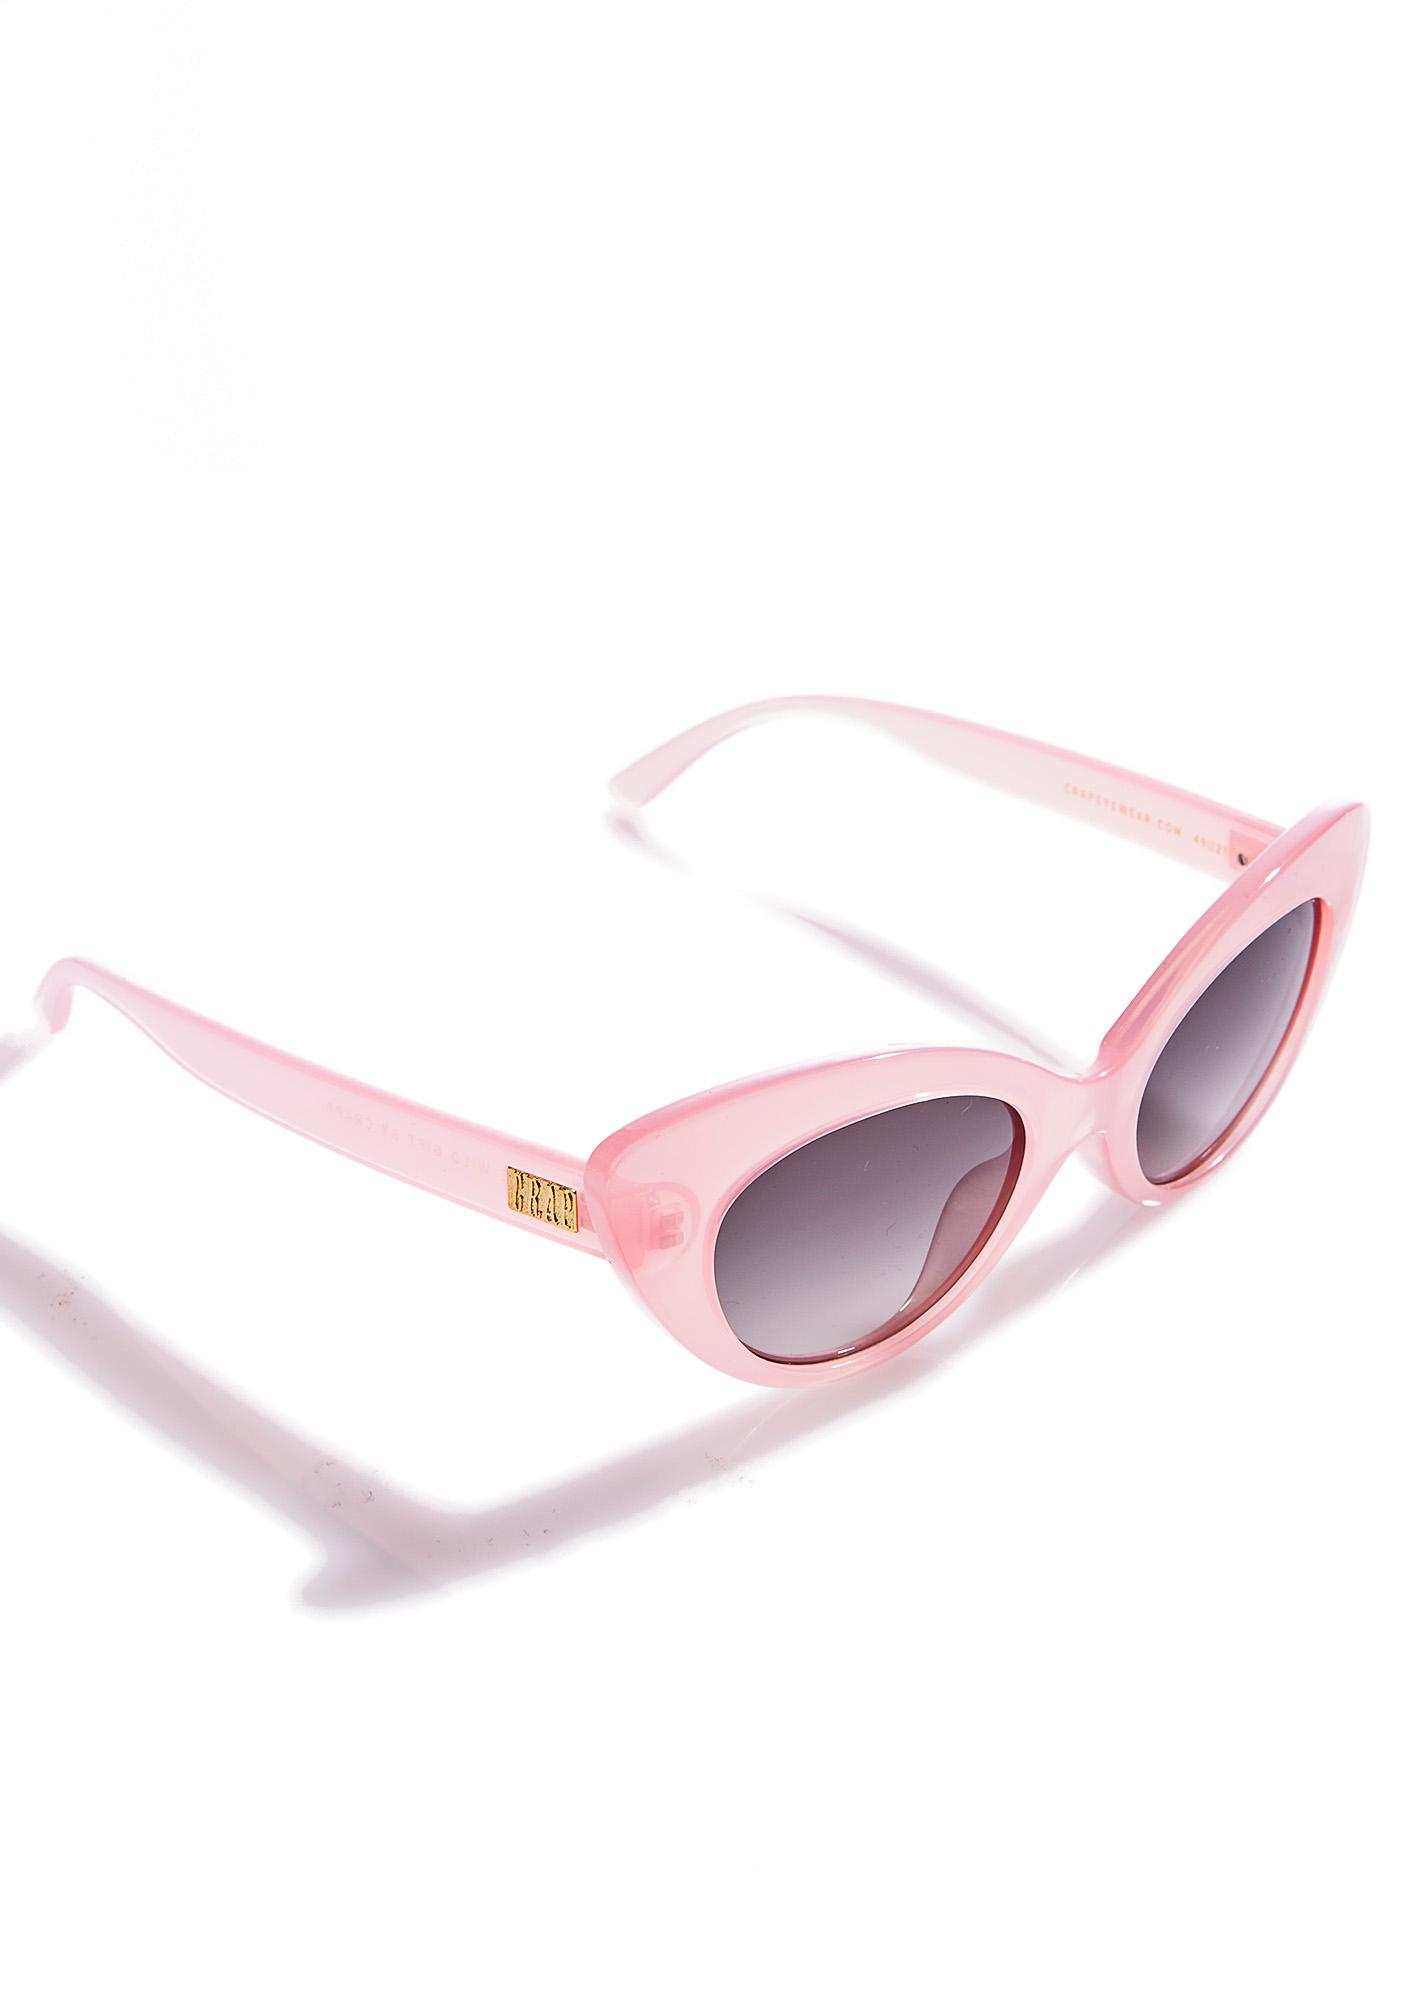 Crap Eyewear Cotton Candy The Wild Gift Sunglasses